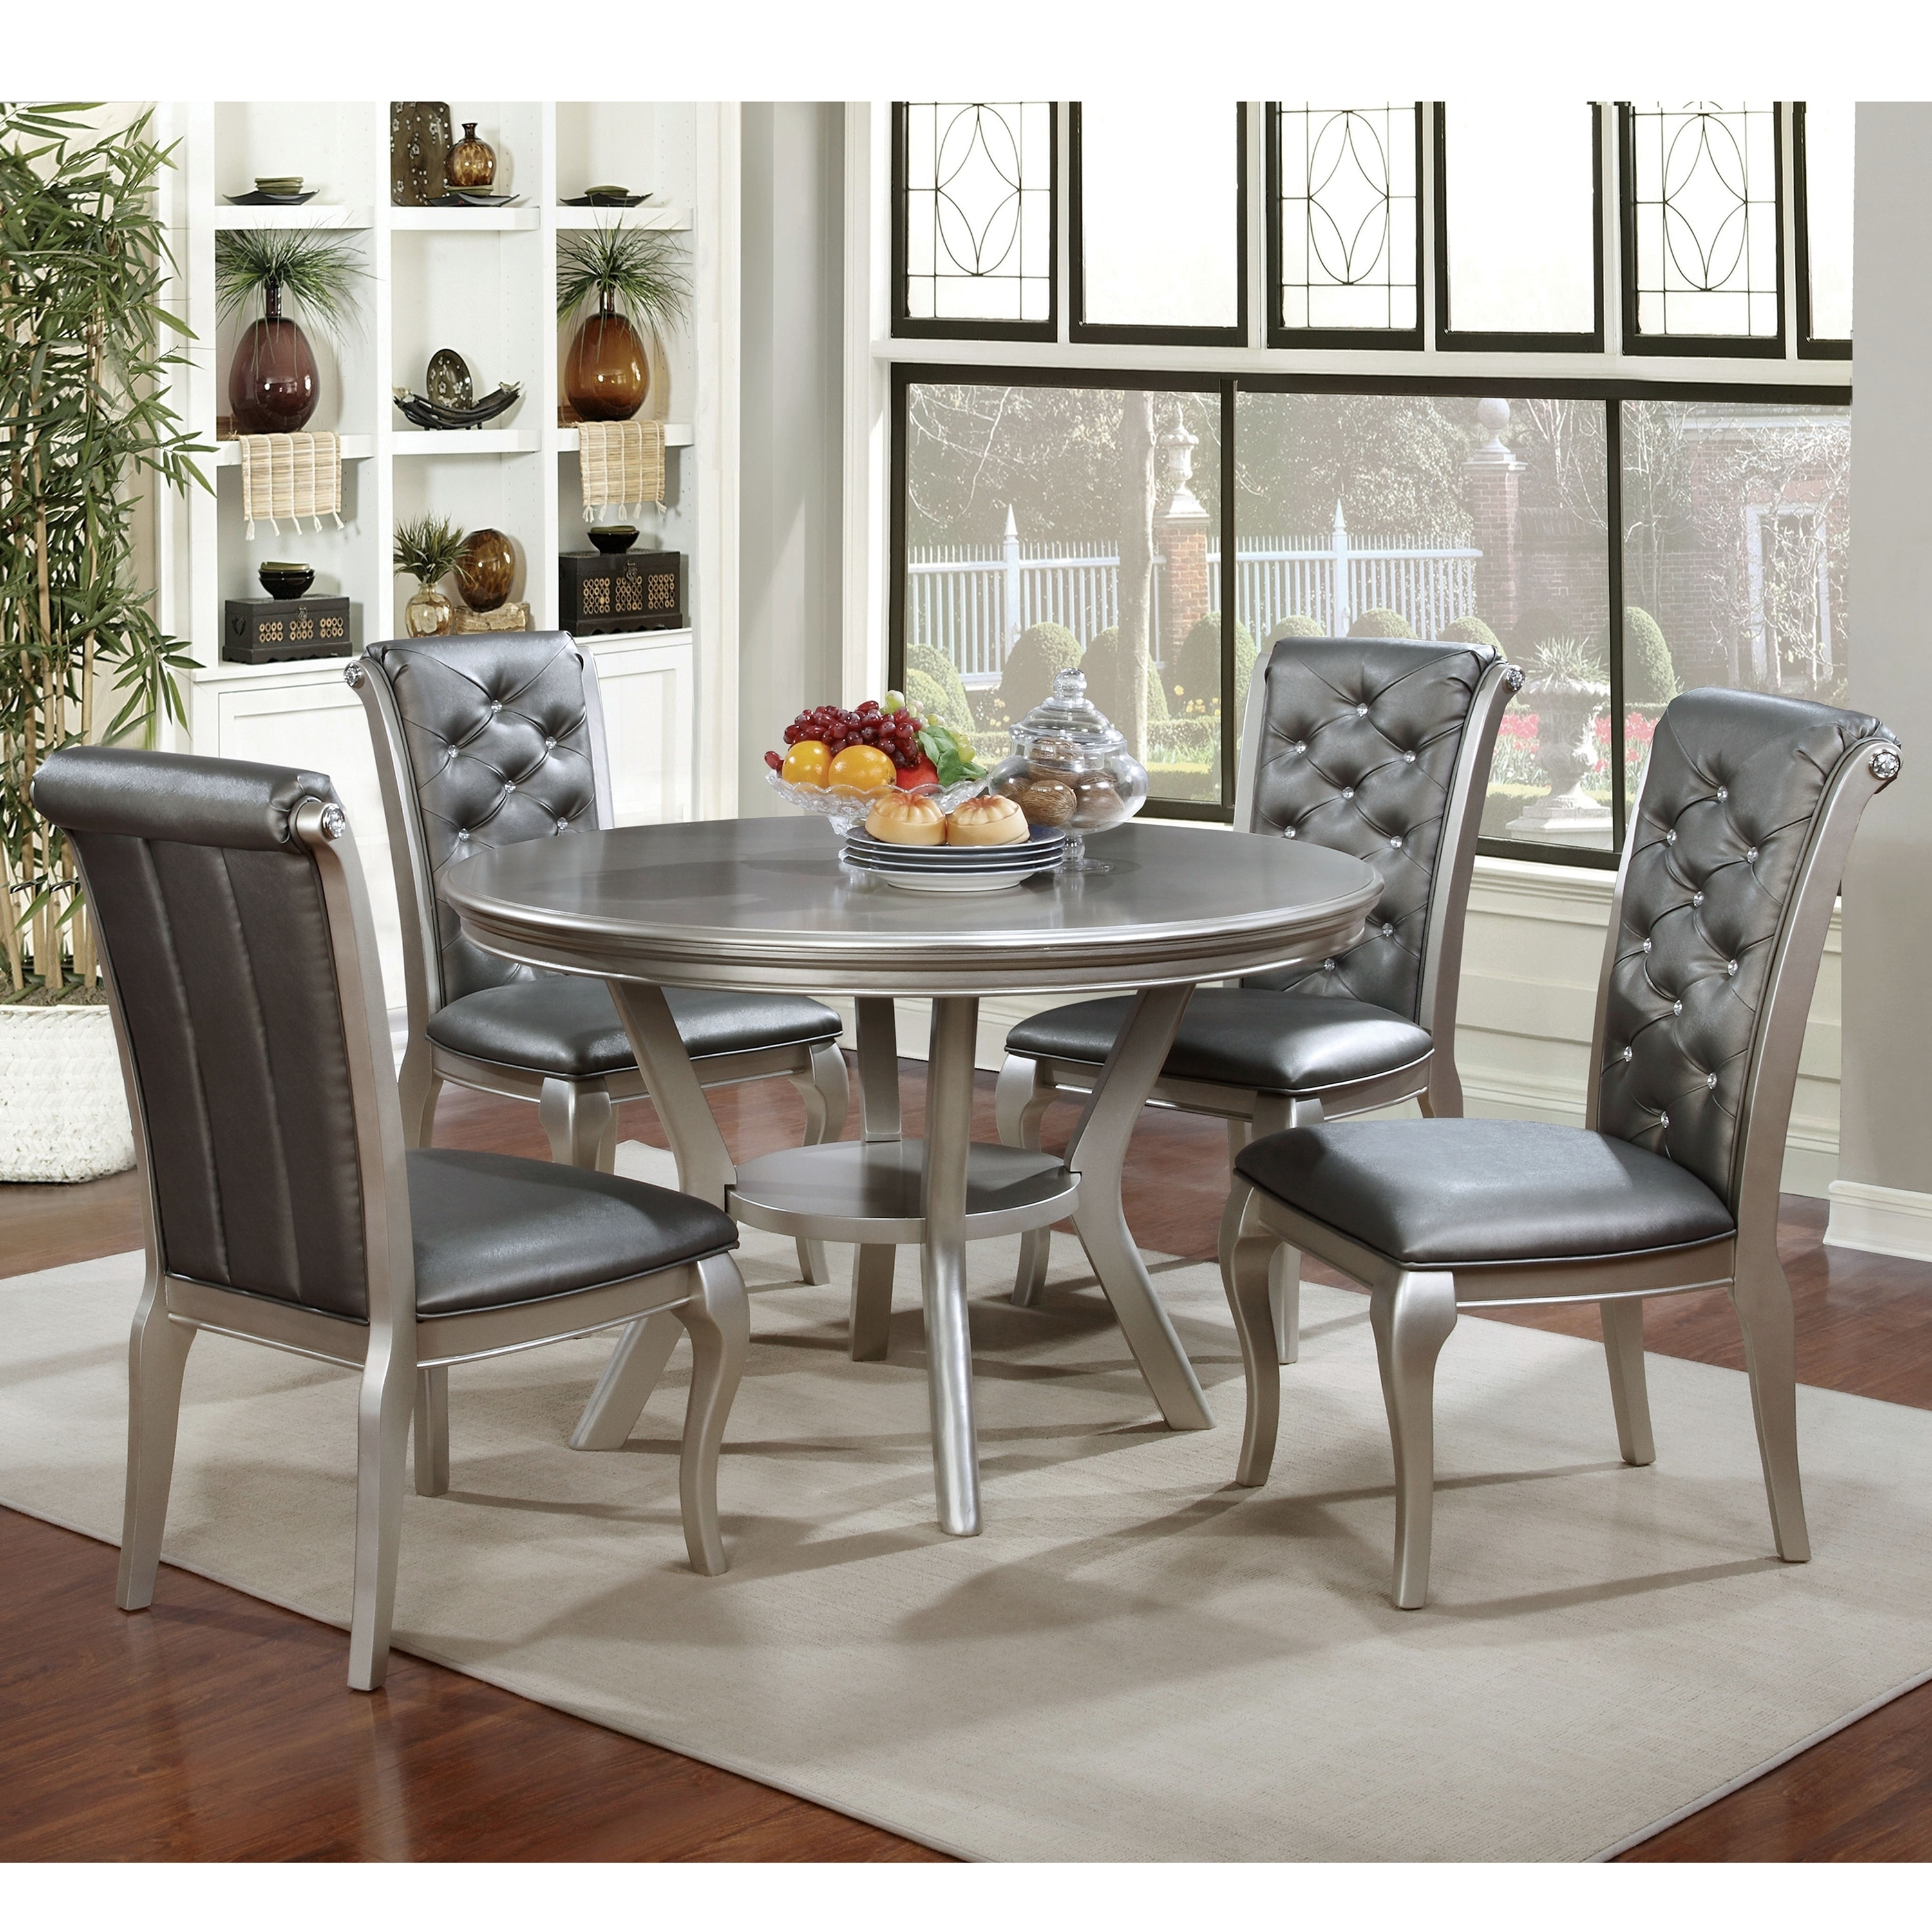 Furniture Of America Tily Glam Gold Solid Wood 5 Piece Dining Set Overstock 25363174